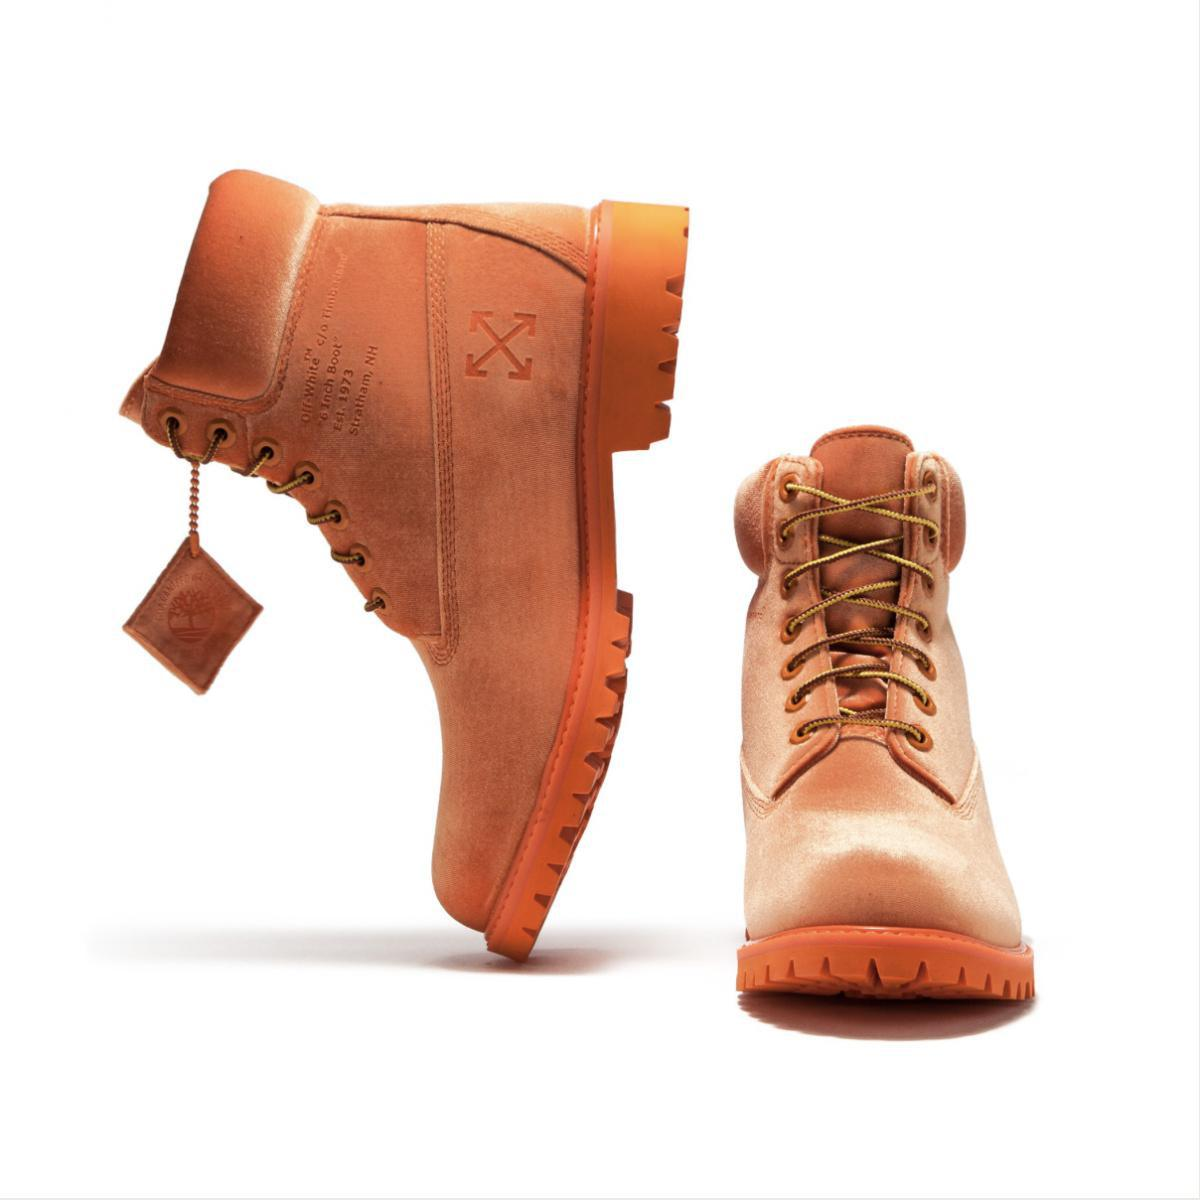 TIMBERLAND Boot x Off-White Boots Orange